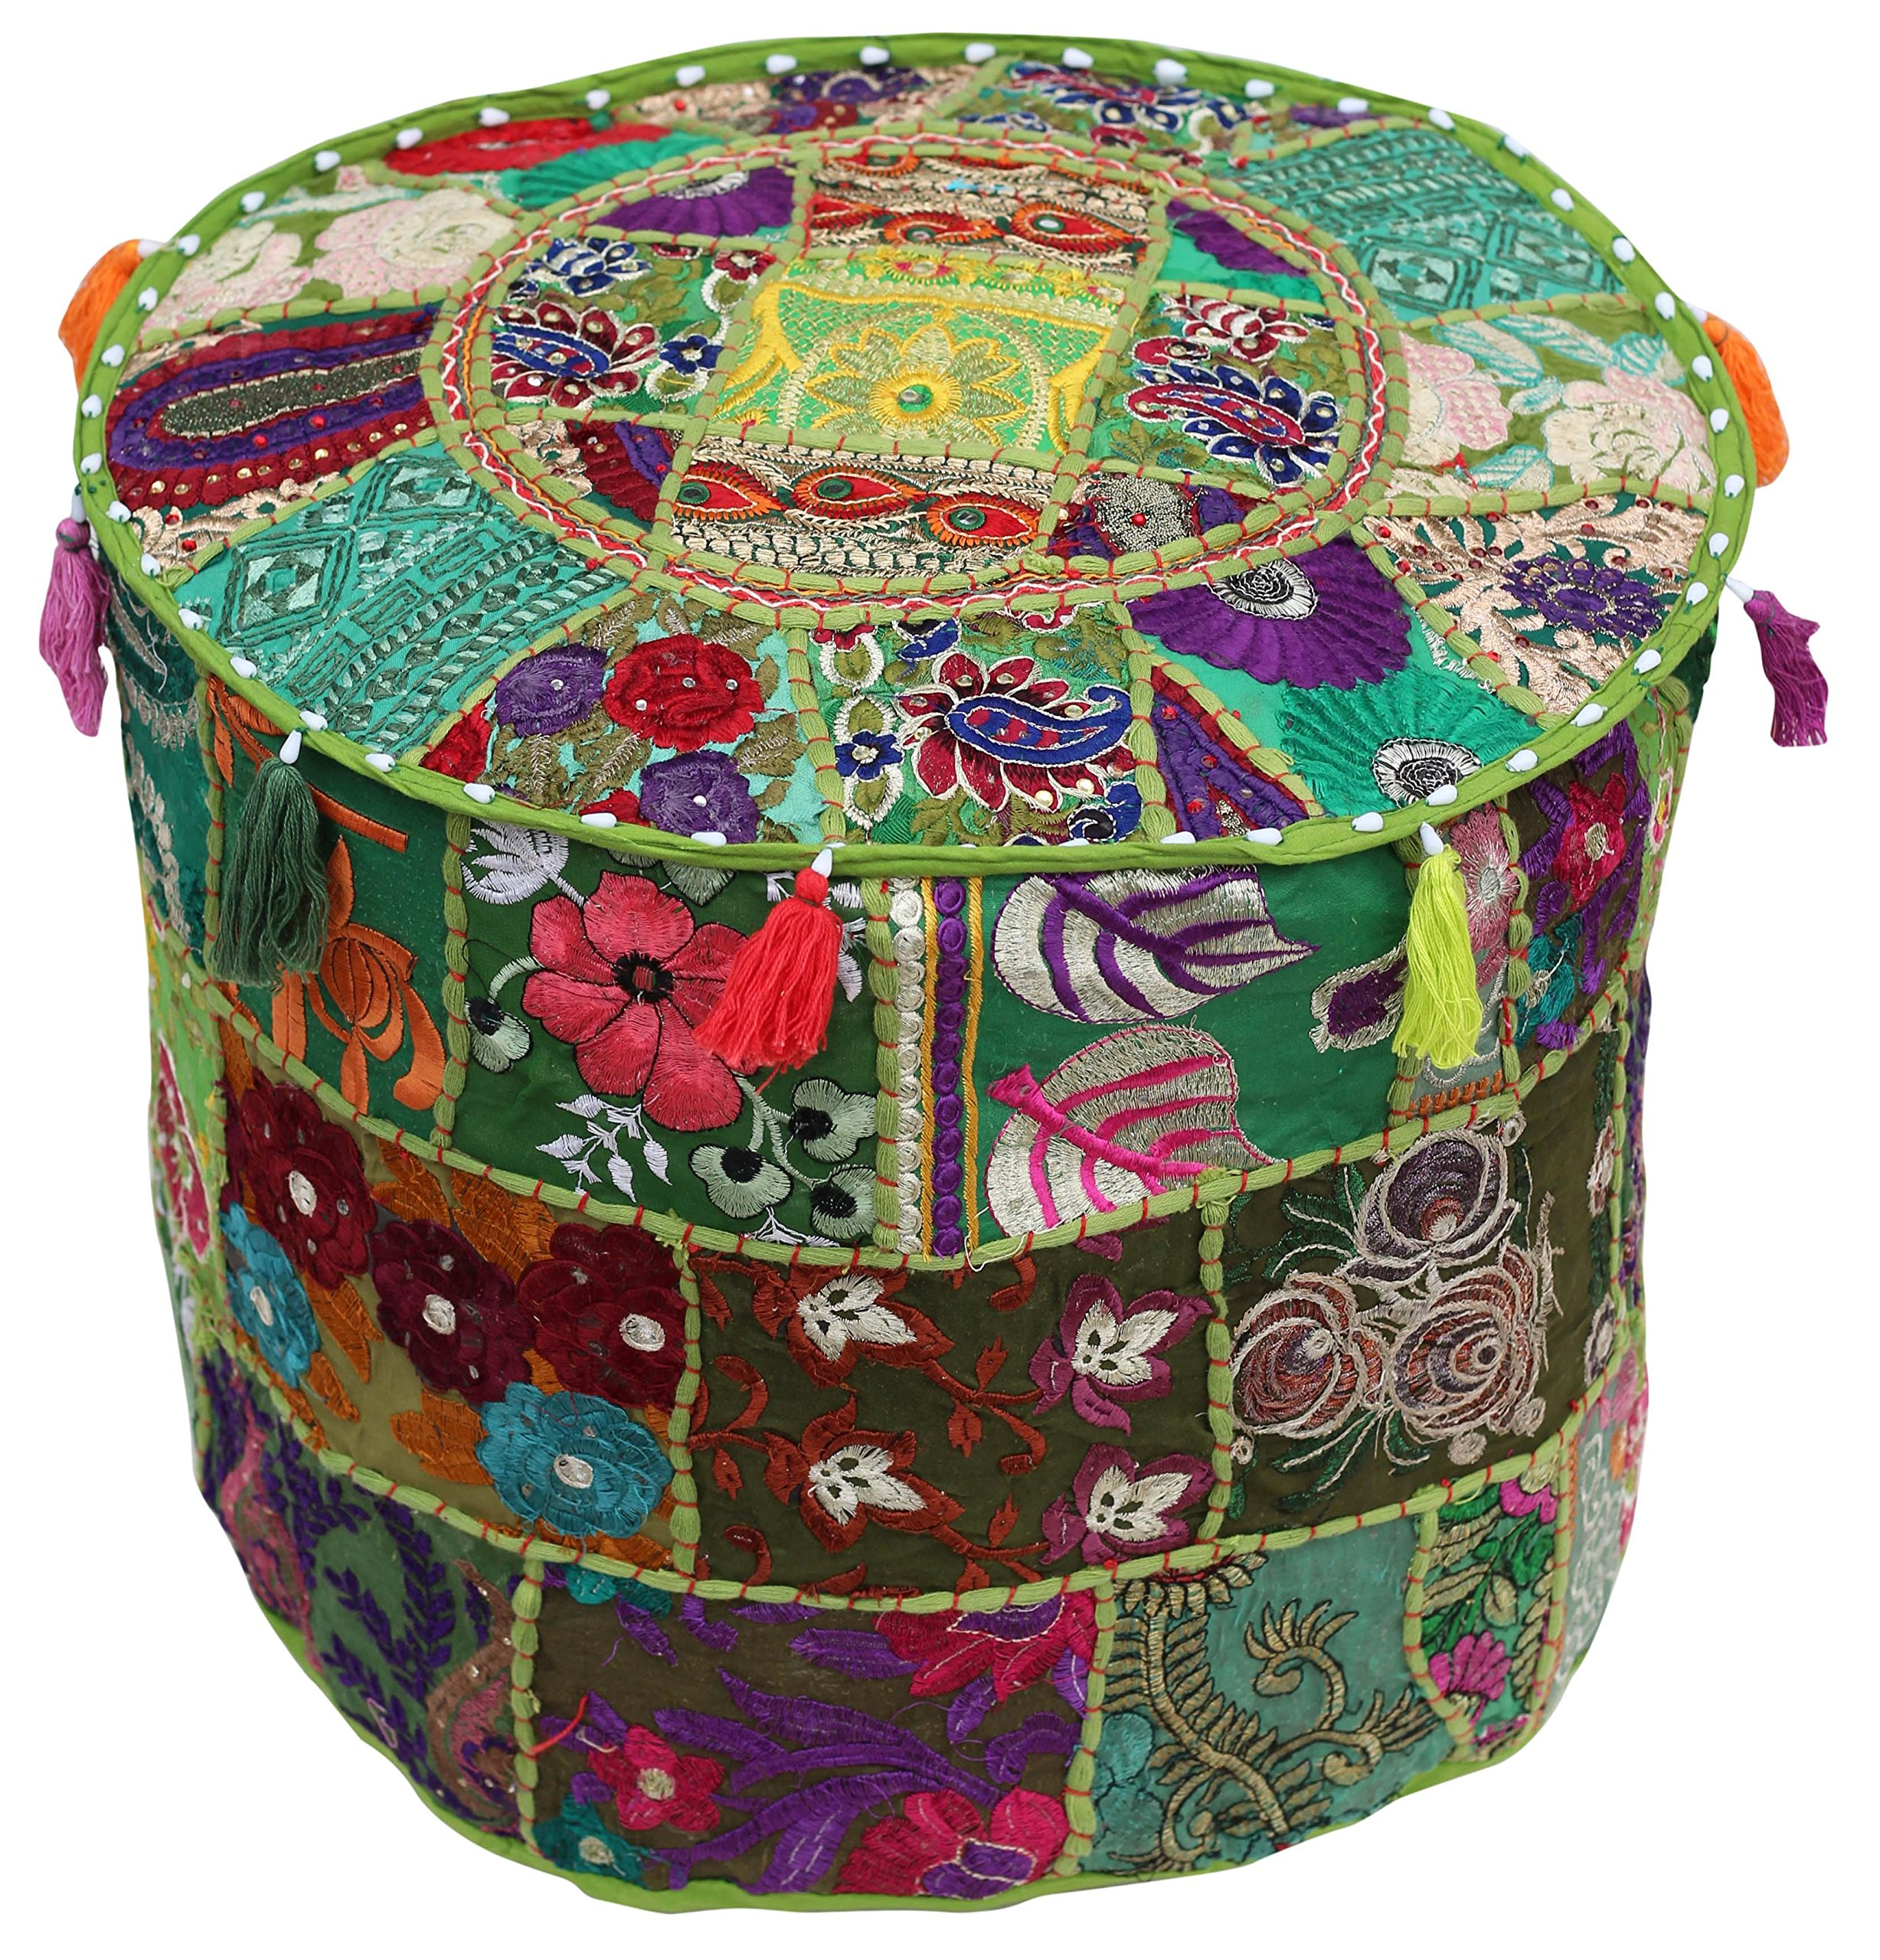 SALE on Pouf Cover - PREMIUM QUALITY - Southwest Ottomans Moroccan Pouf 18.5''x14'' Handmade Bohemian Foot Stool in 100% Cotton Fabric with Patchwork